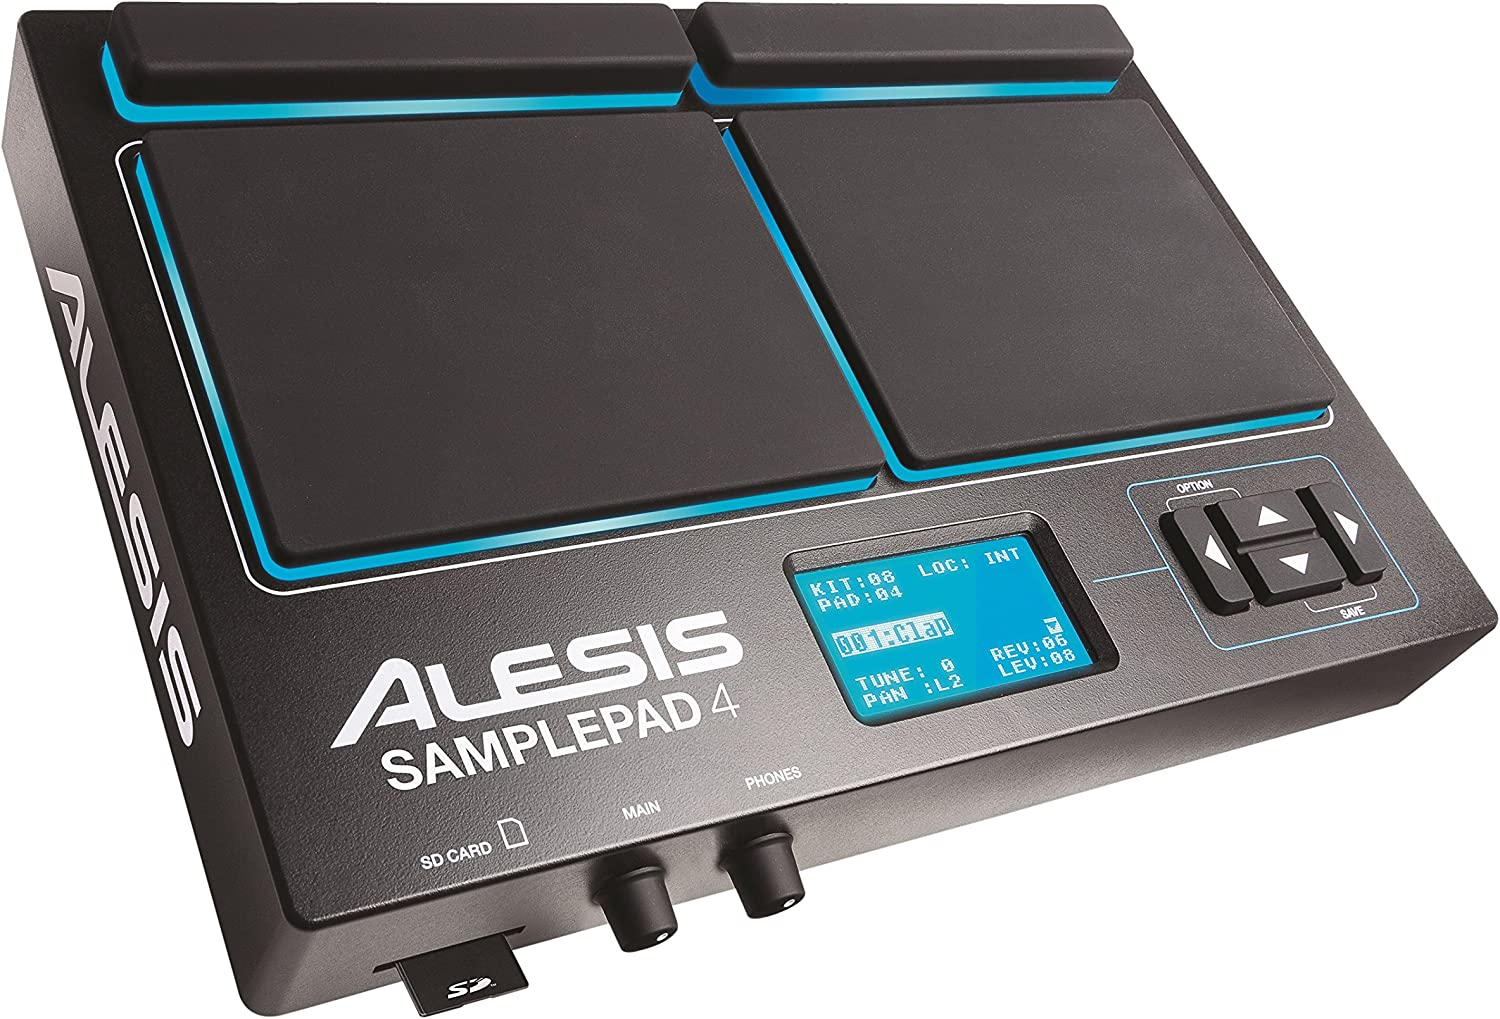 Alesis Sample Pad 4- Best Compact